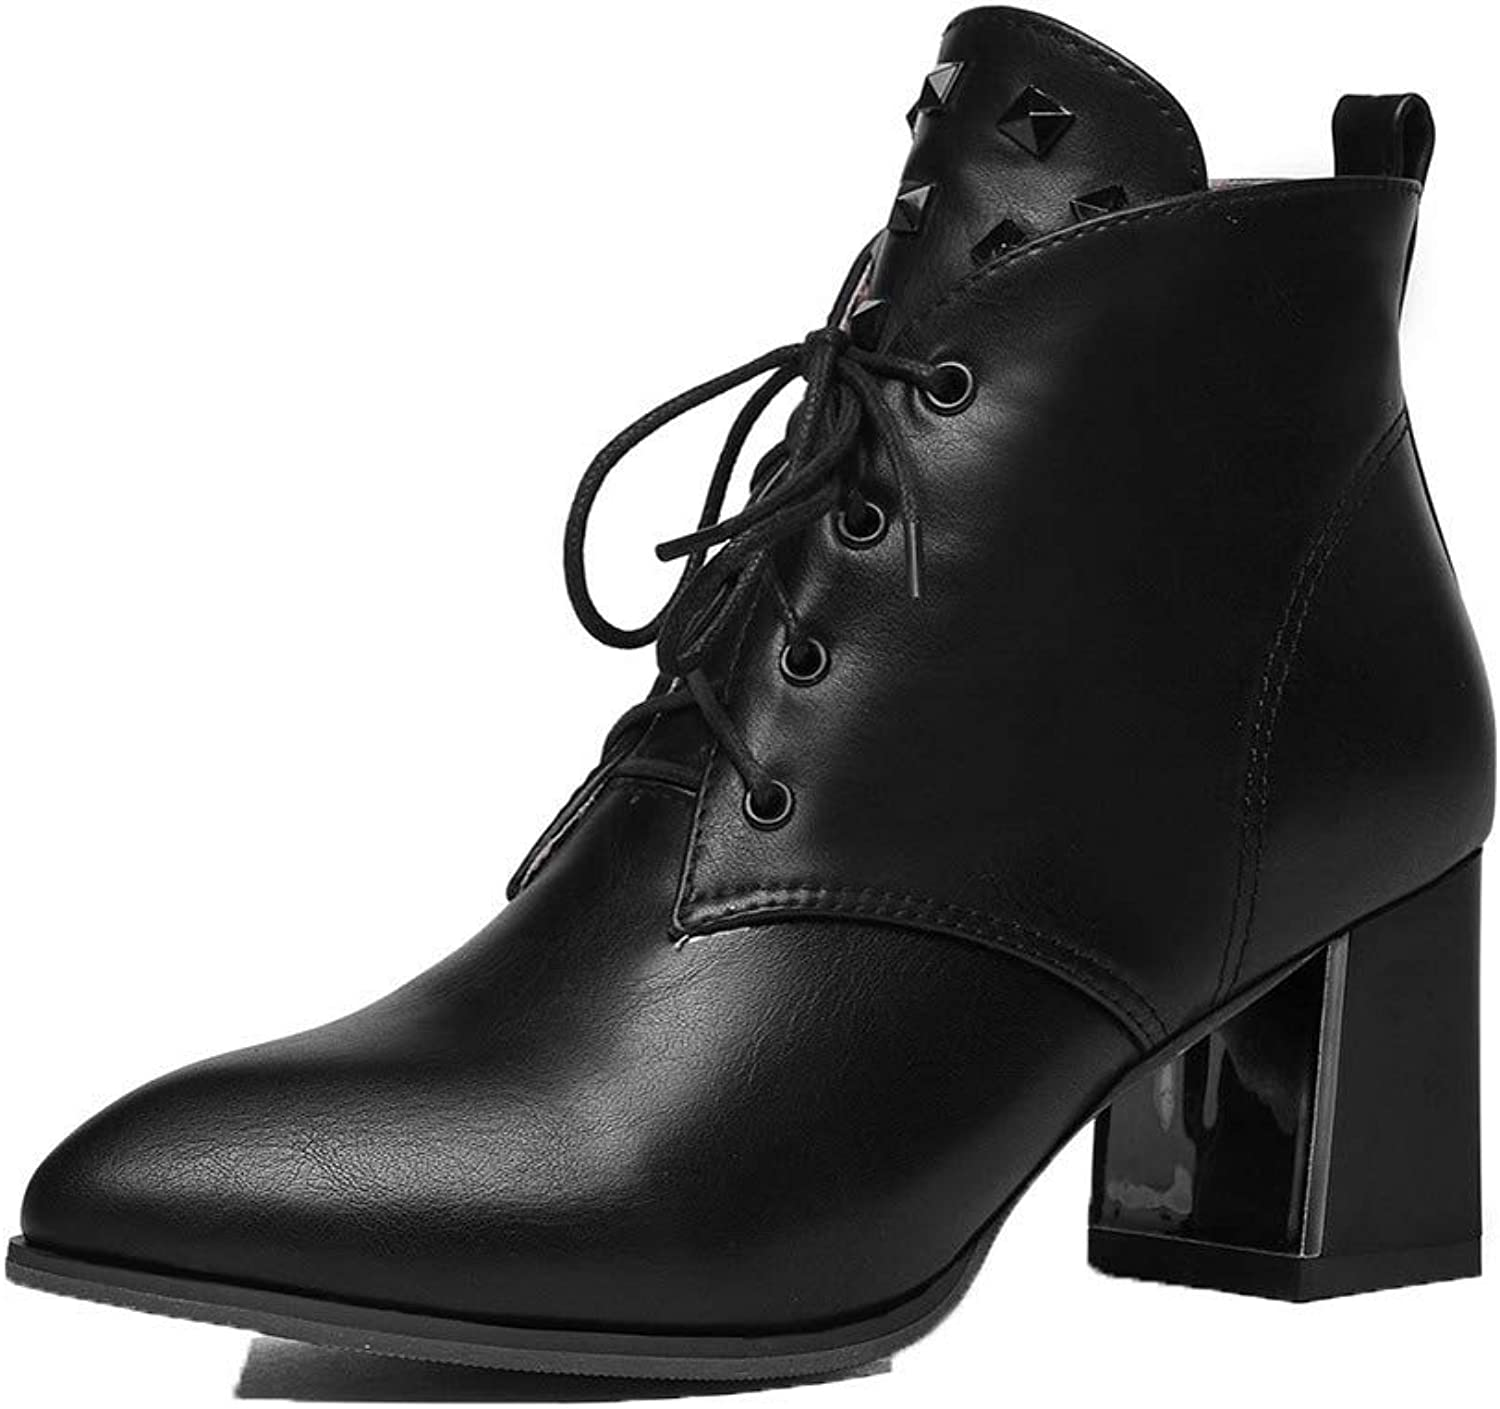 WeenFashion Women's Lace-Up Kitten-Heels Pu Solid Low-Top Boots, AMGXX128579